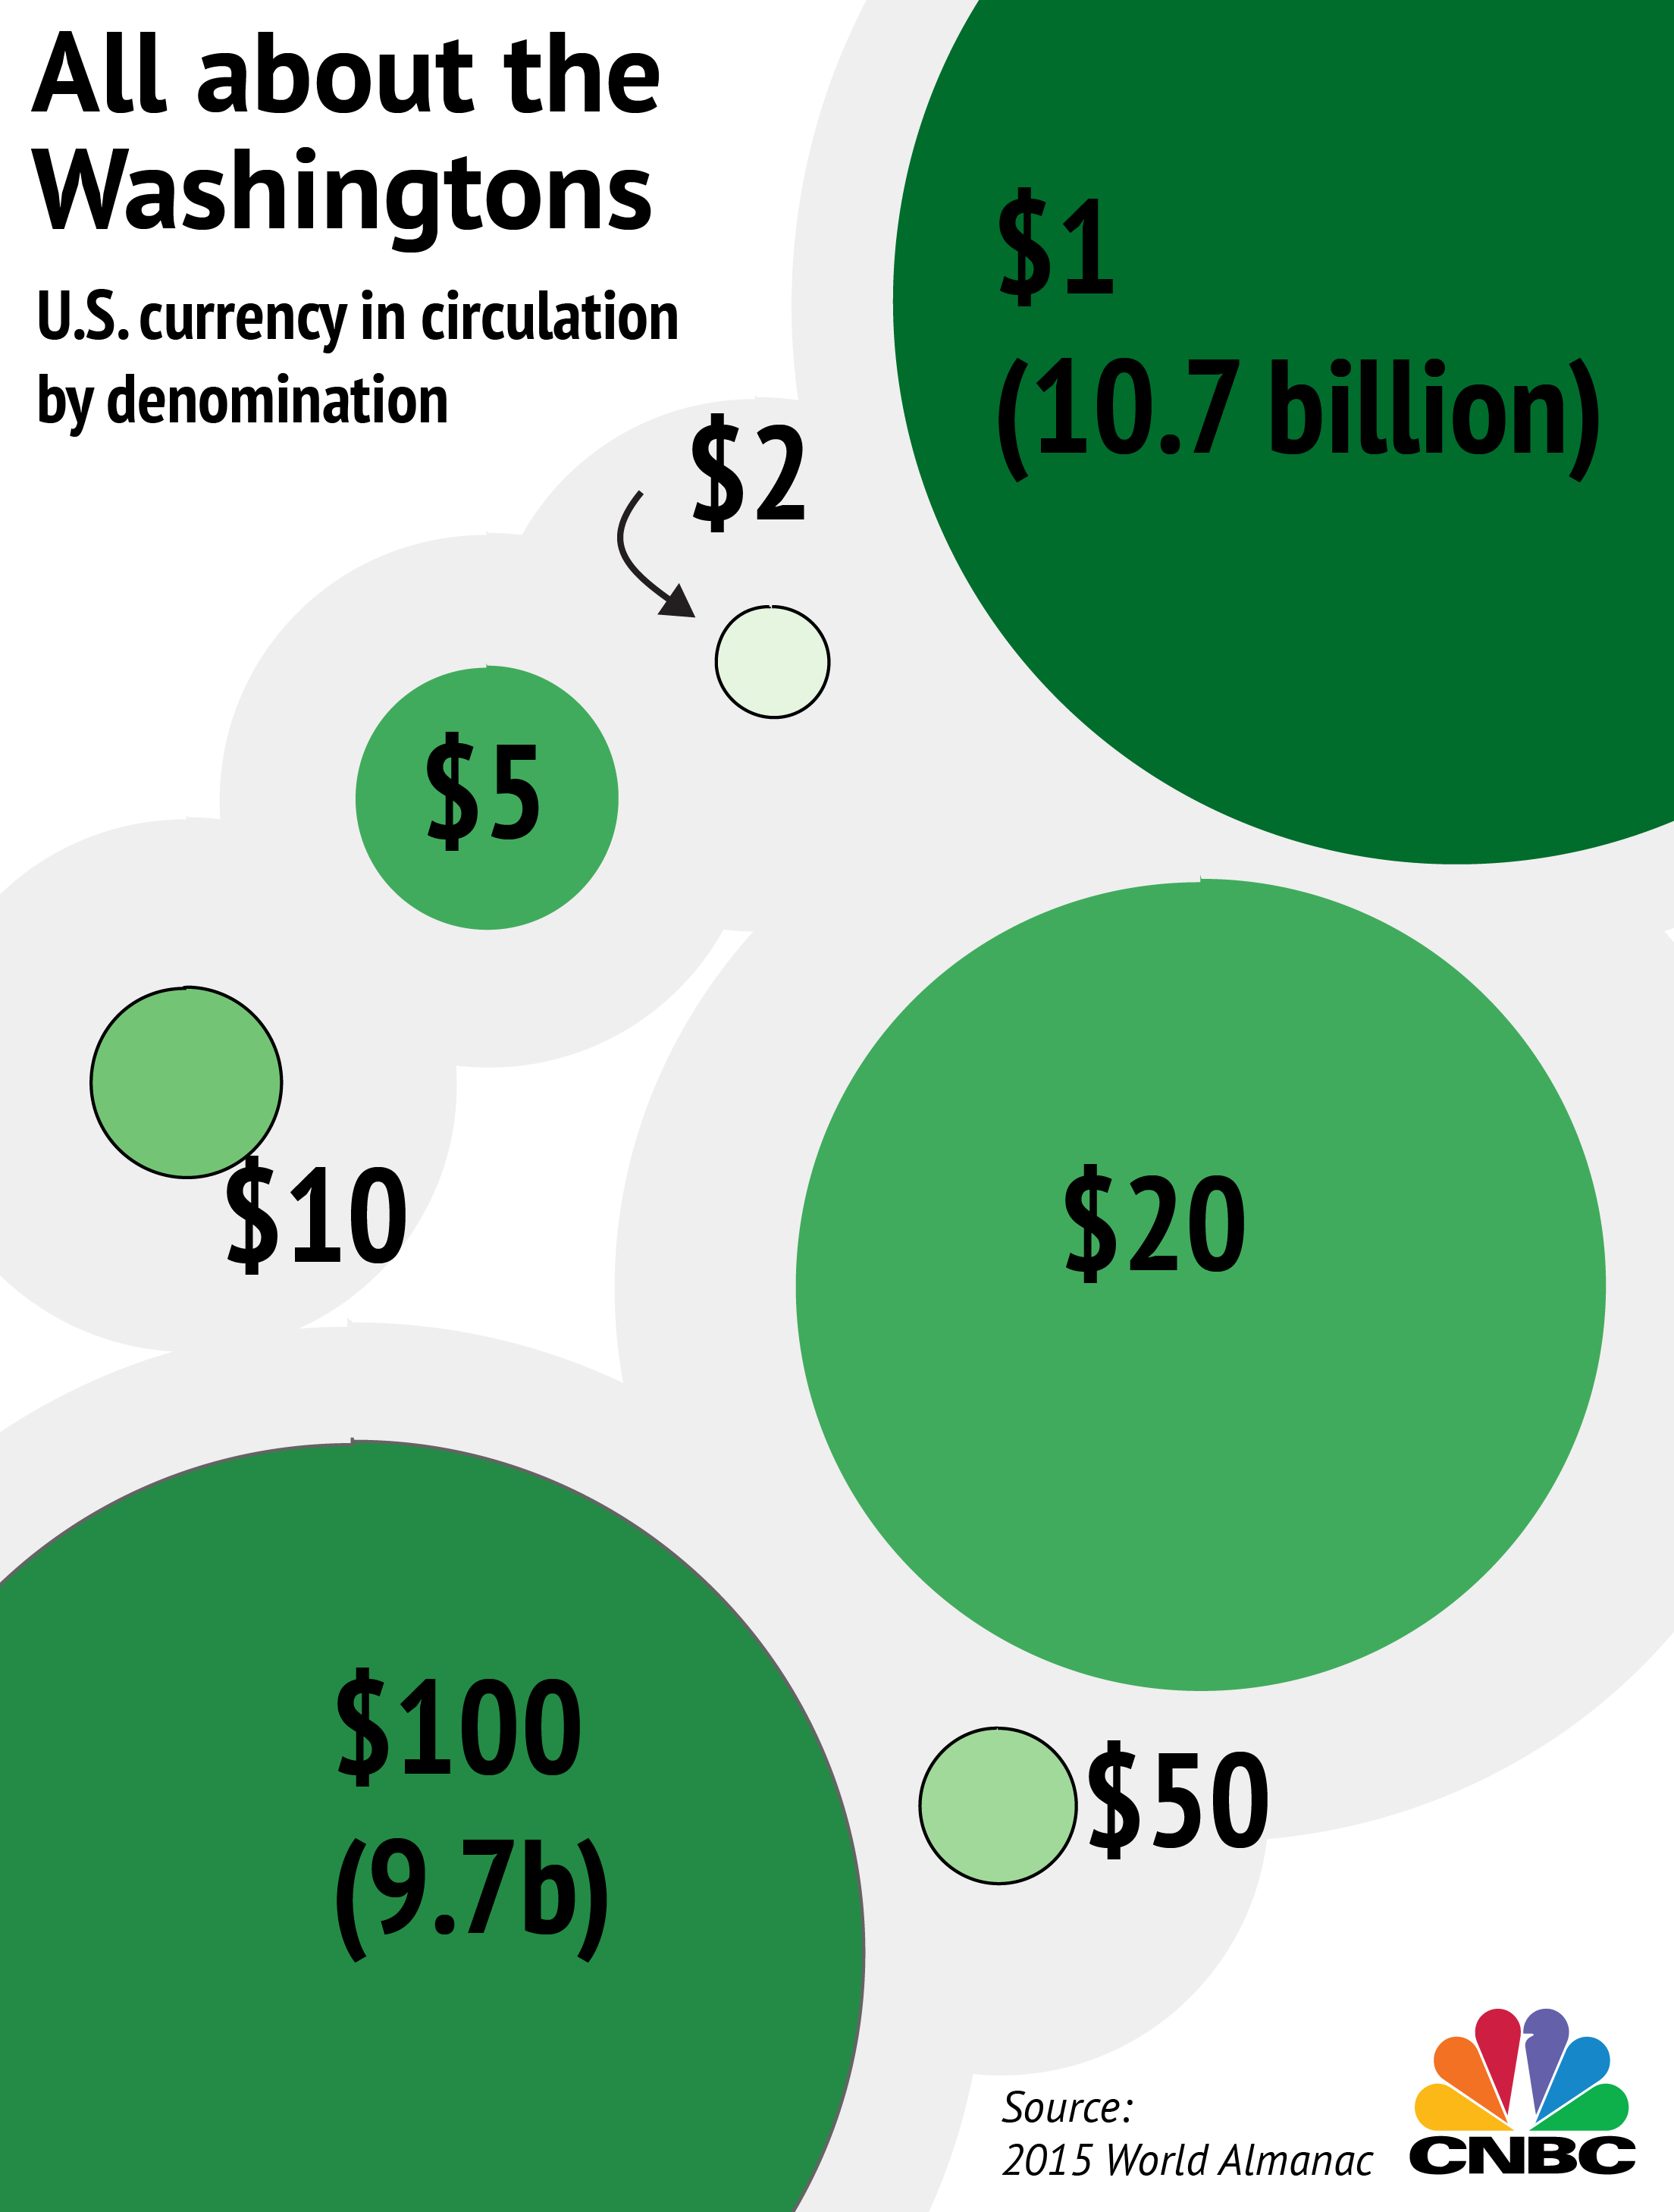 100s closing in on 1s for most common currency